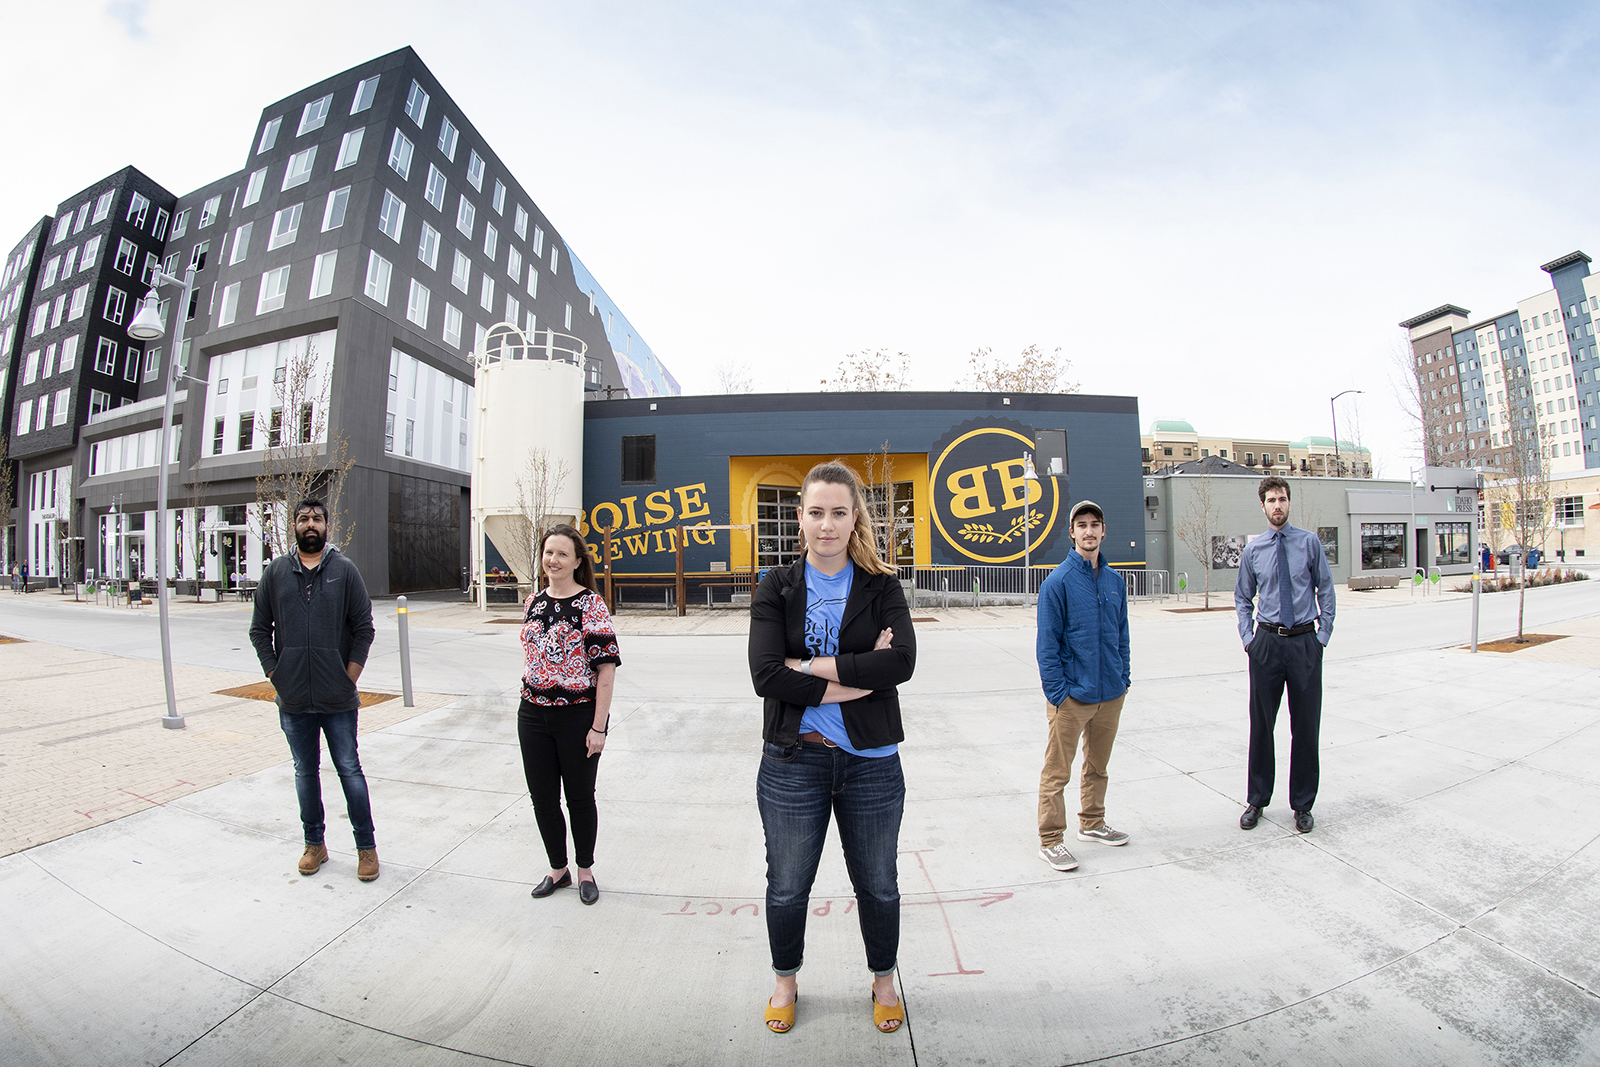 5 students in front of Boise Brewing